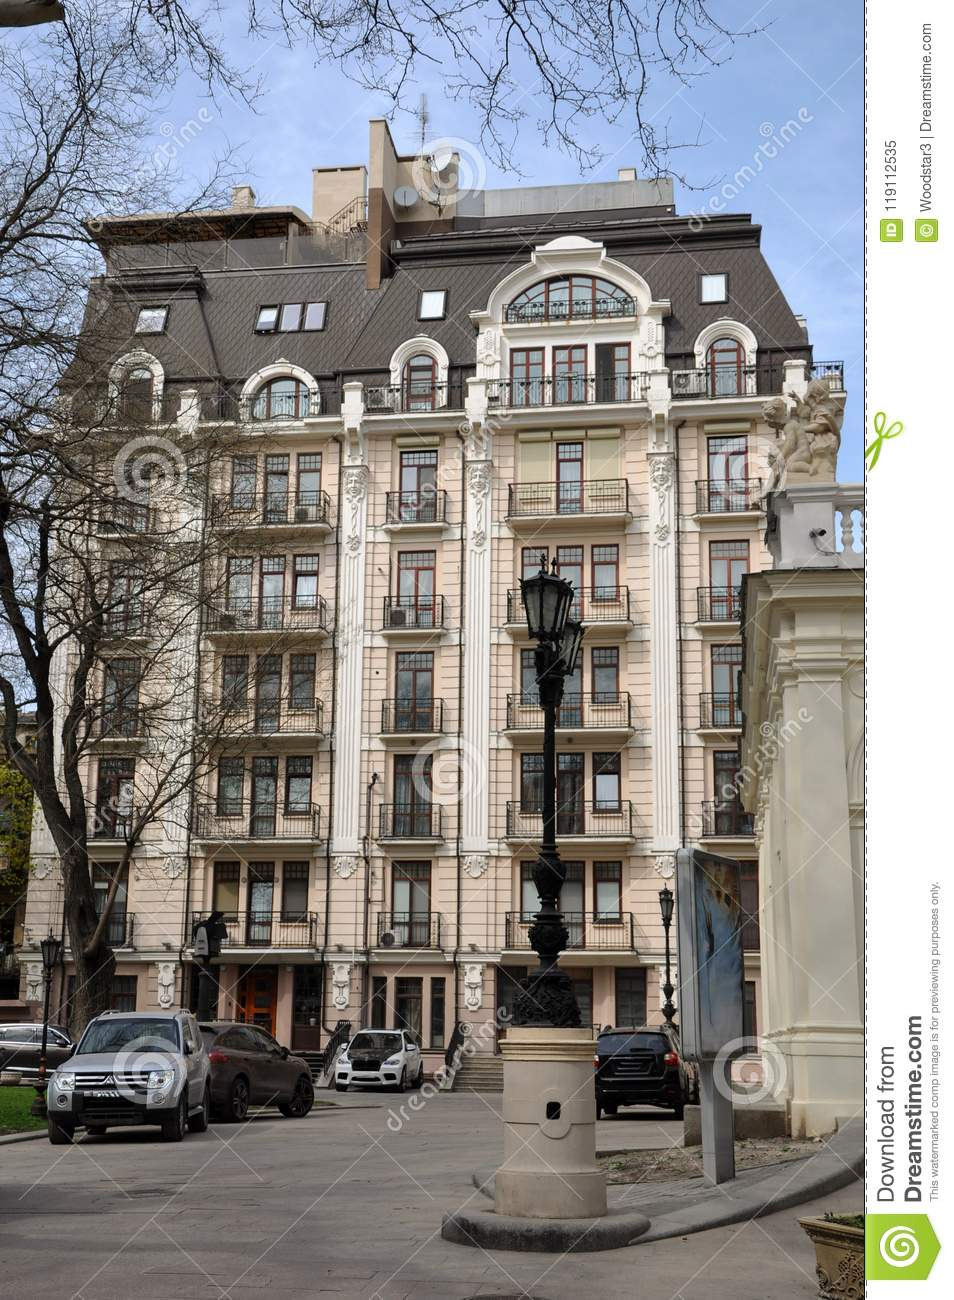 modern houses one most beautiful new buildings next to theater opera ballet quiet cozy area the palais royal image